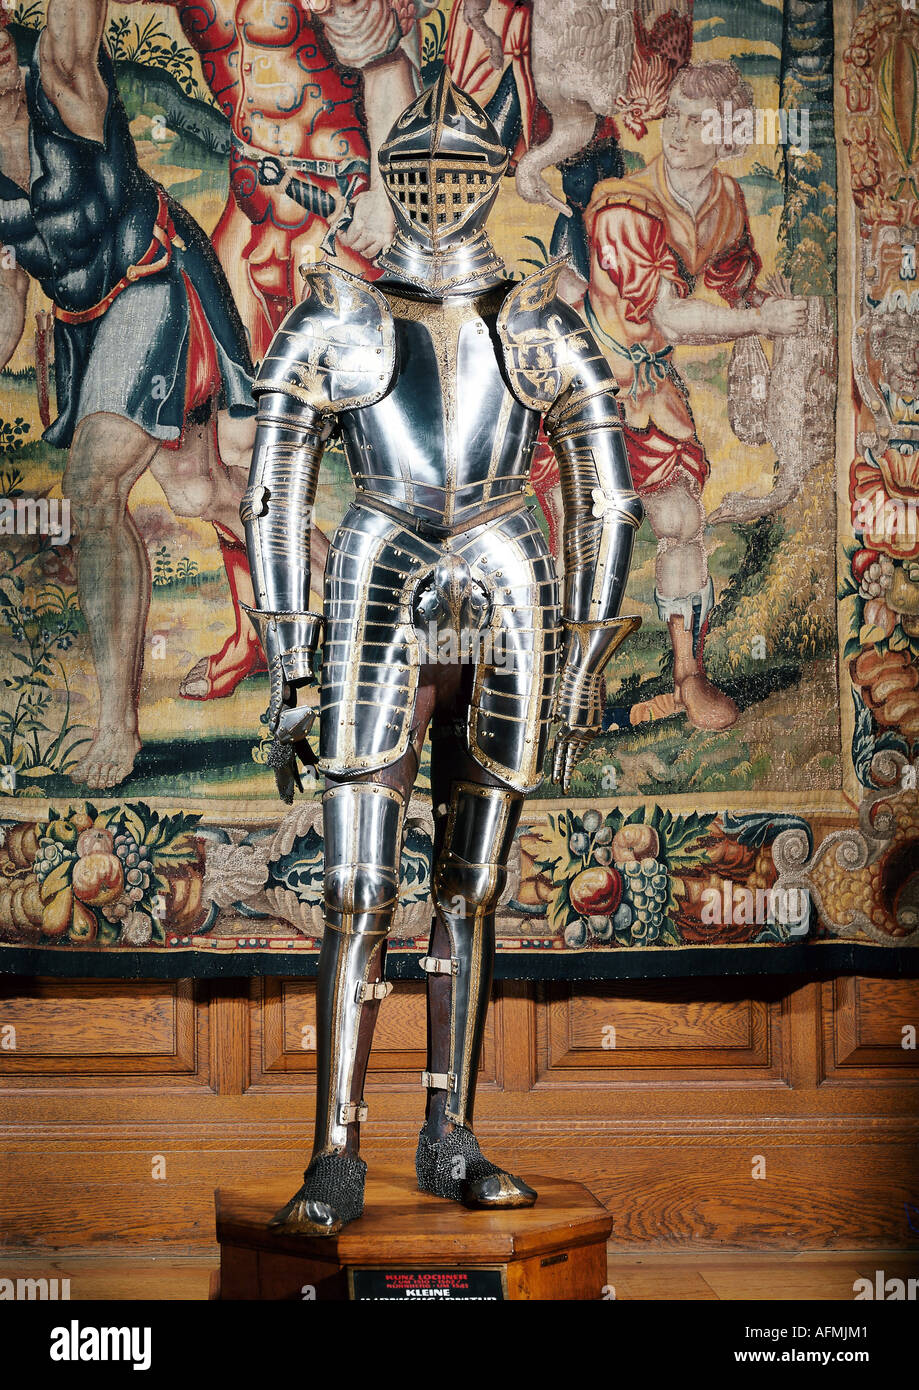 weapons / arms, amour, harness, emperor Maximilian I., by Lorenz Helmschmid, Augsburg, circa 1495, Konrad Seusendorfer, Innsbruck, circa 1510/1511, Dutch workshop, Kunsthistorisches Museum, Vienna, Collection of arms and armor, middle ages, Gothic, knight, handcraft, 15th century, accoutrements of knighthood, visor, helmet, military, historic, historical, medieval, Additional-Rights-Clearances-NA - Stock Image